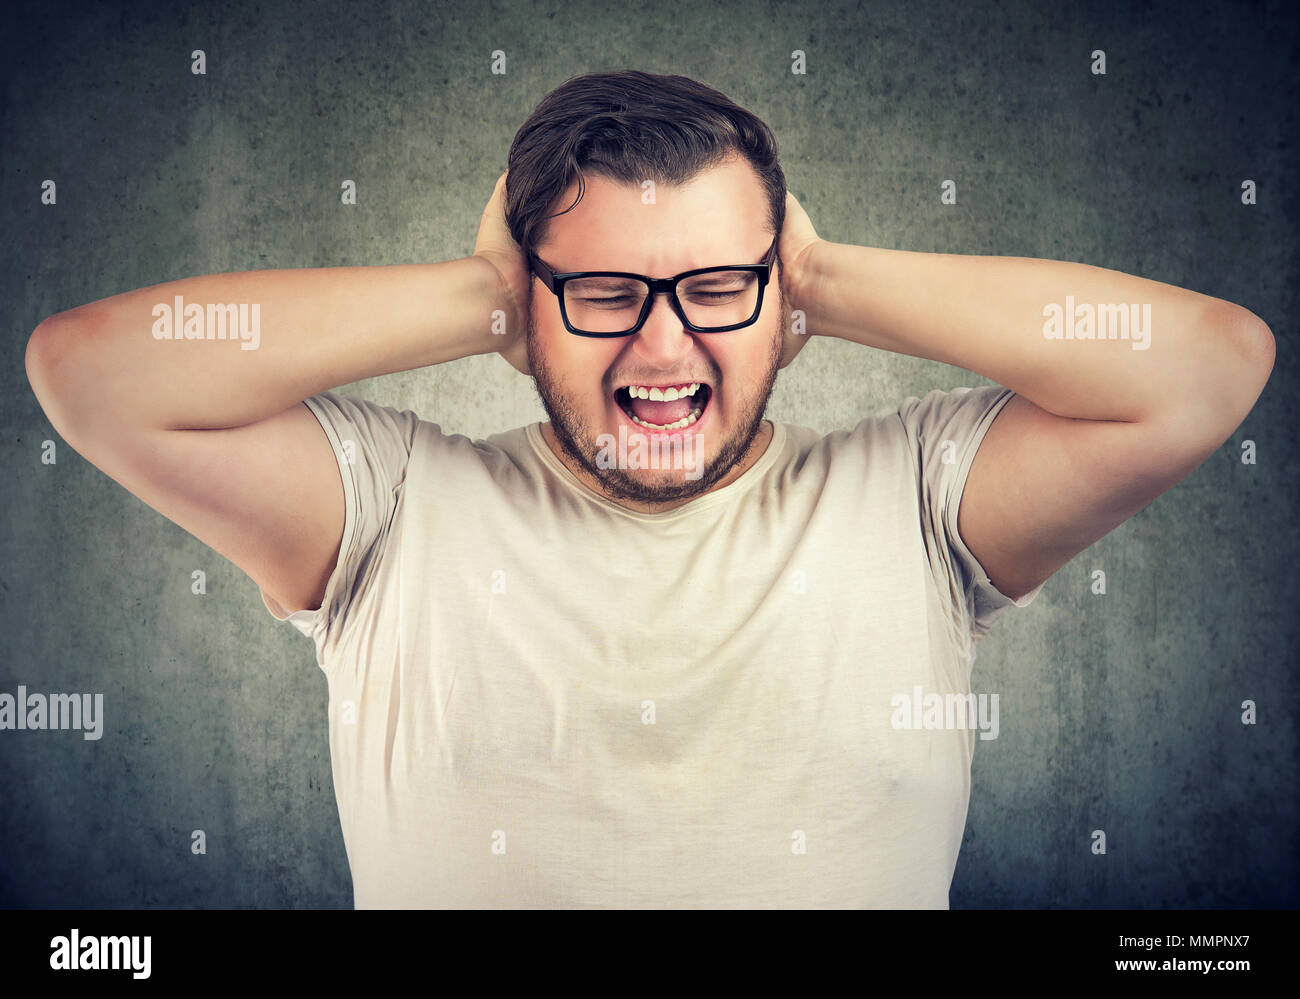 Stressed bearded man in glasses covering ears having hysteria and nervous breakdown. - Stock Image